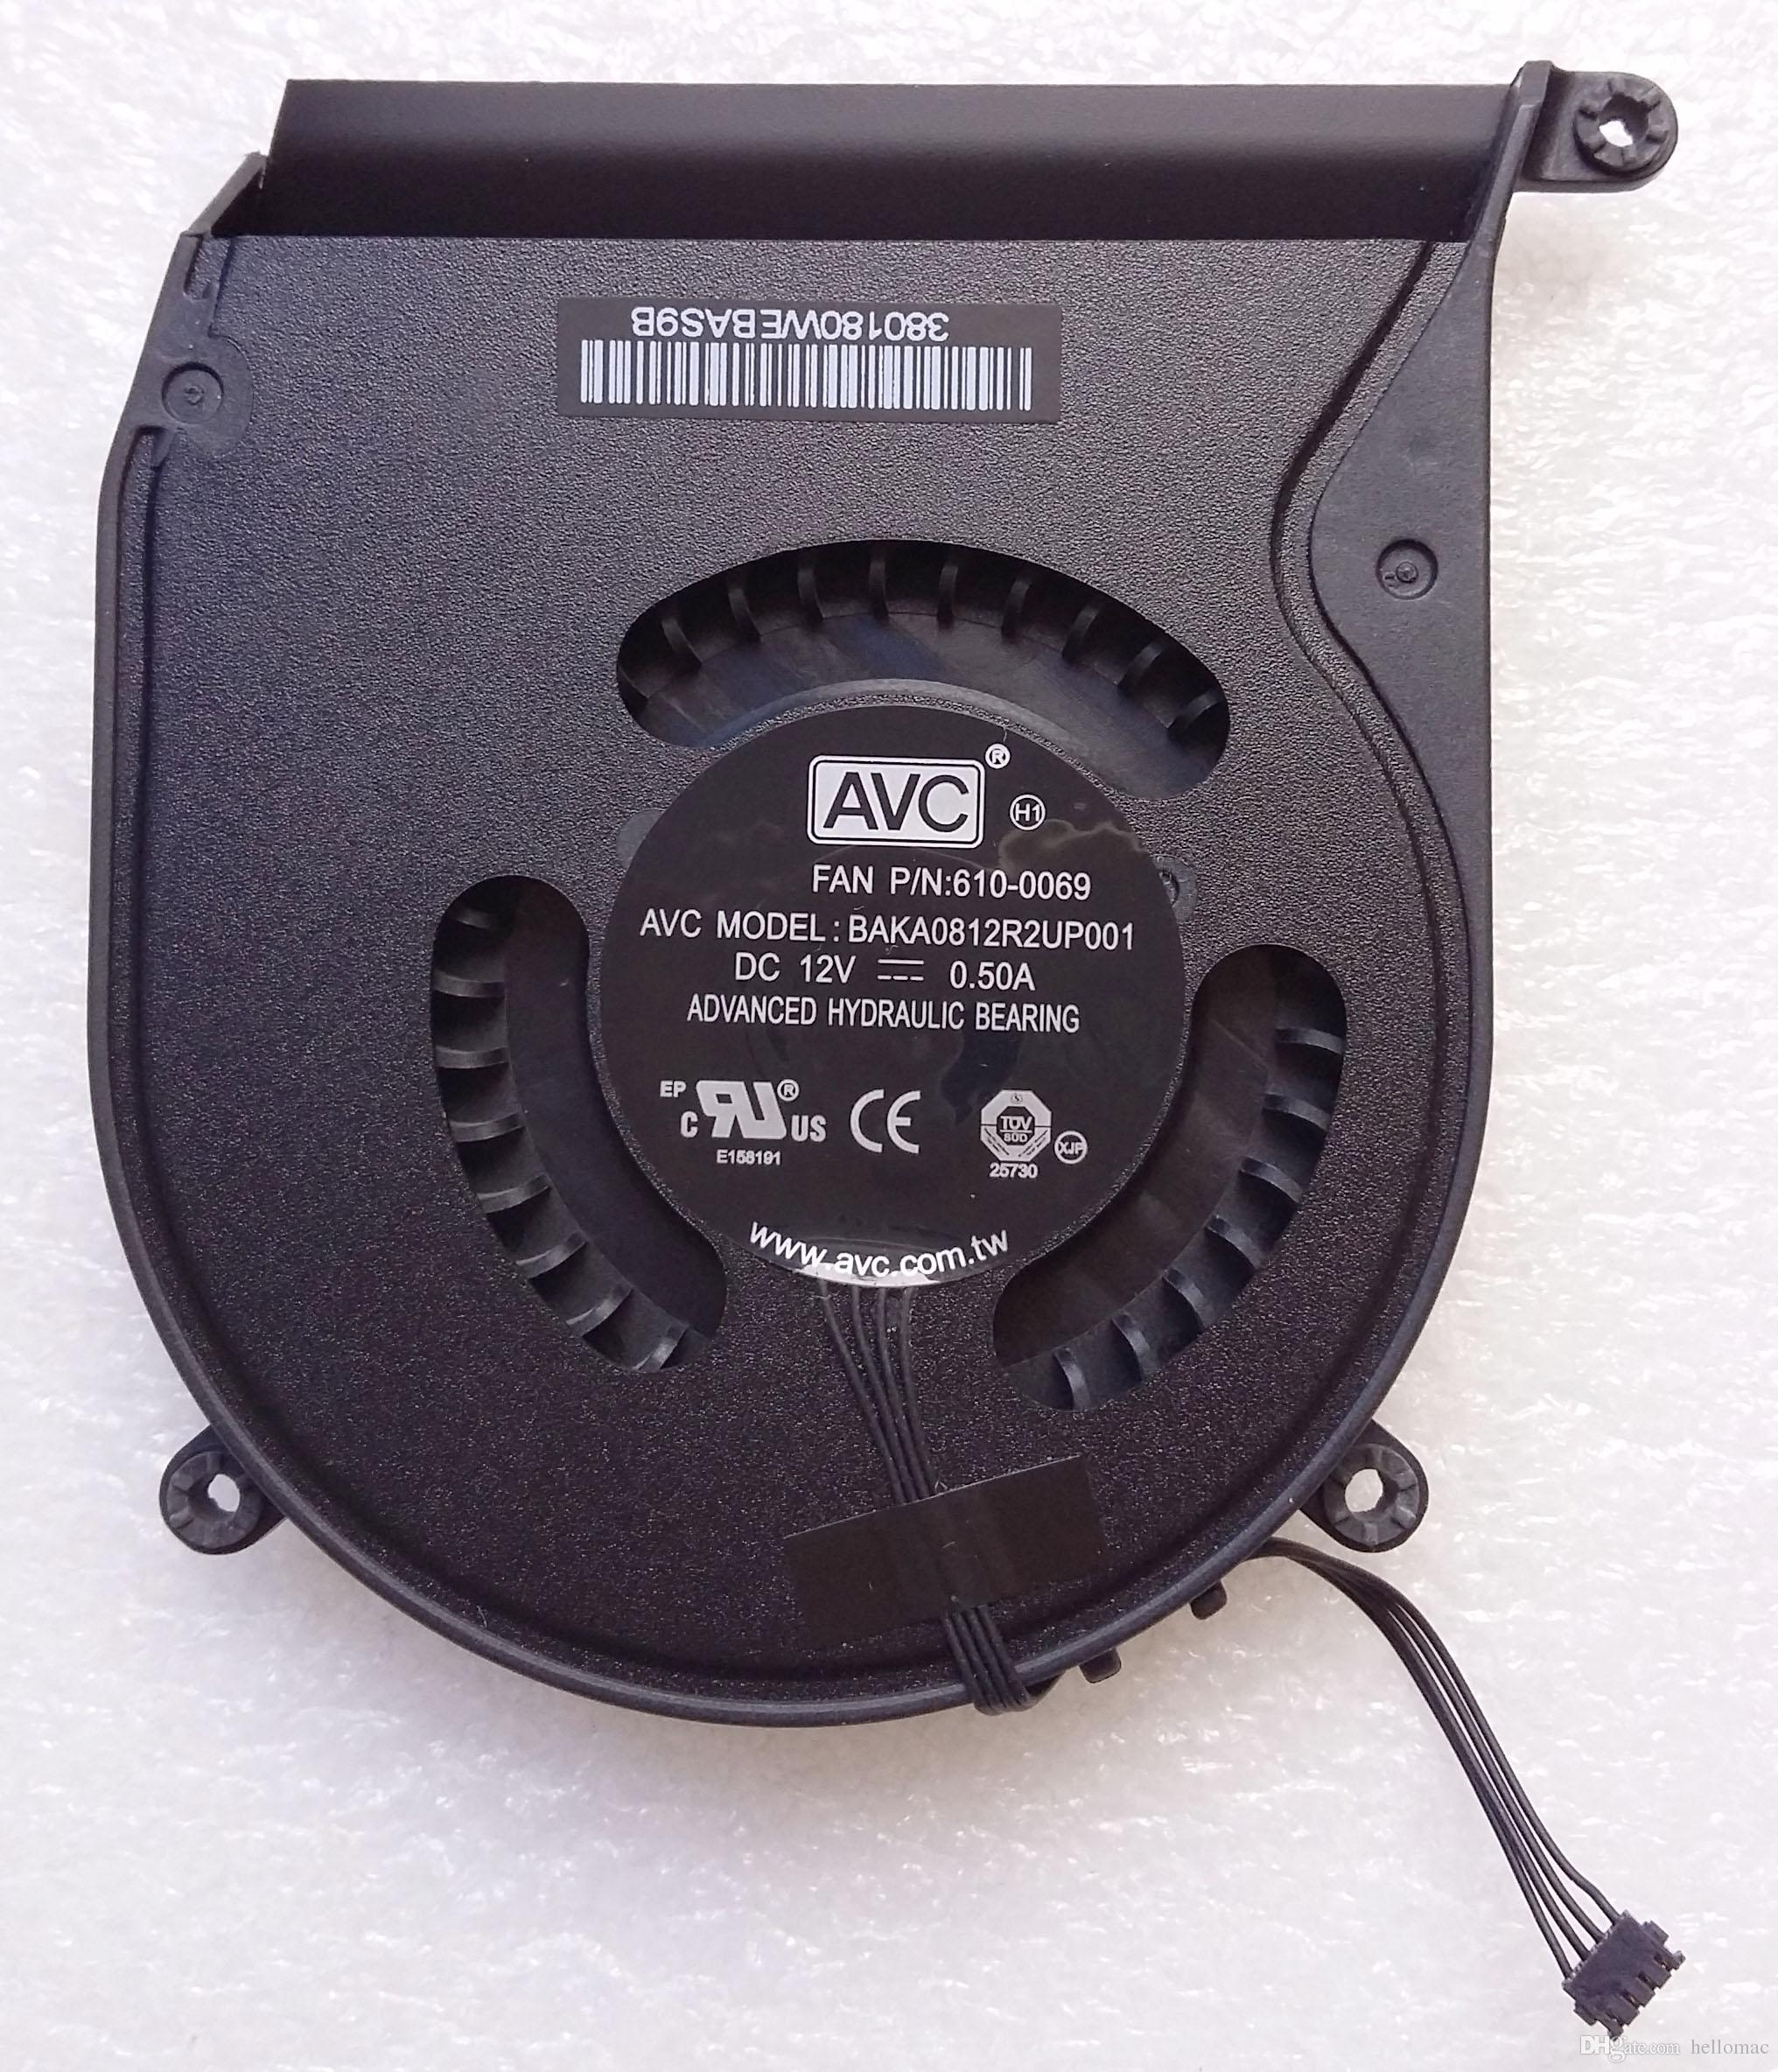 New AVC BAKA0812R2UP001 DC12V 0.50A COOLING FAN FOR APPLE FAN P//N:610-0069 Apple Mac Mini A1347 Mid 2011 COOLING FAN